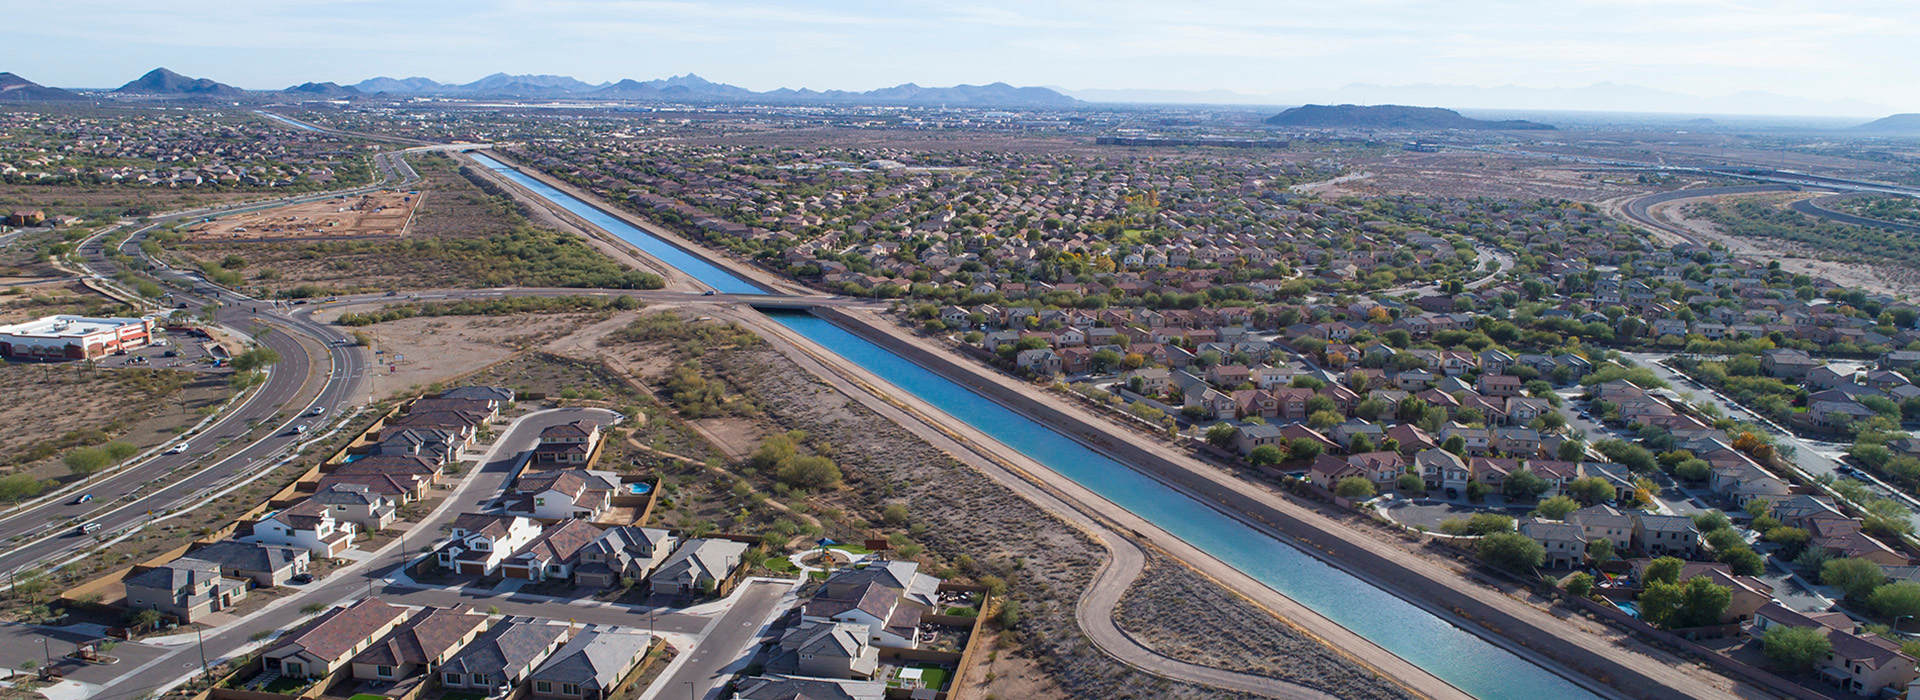 Central Arizona Project Releases Important Arizona Water Information